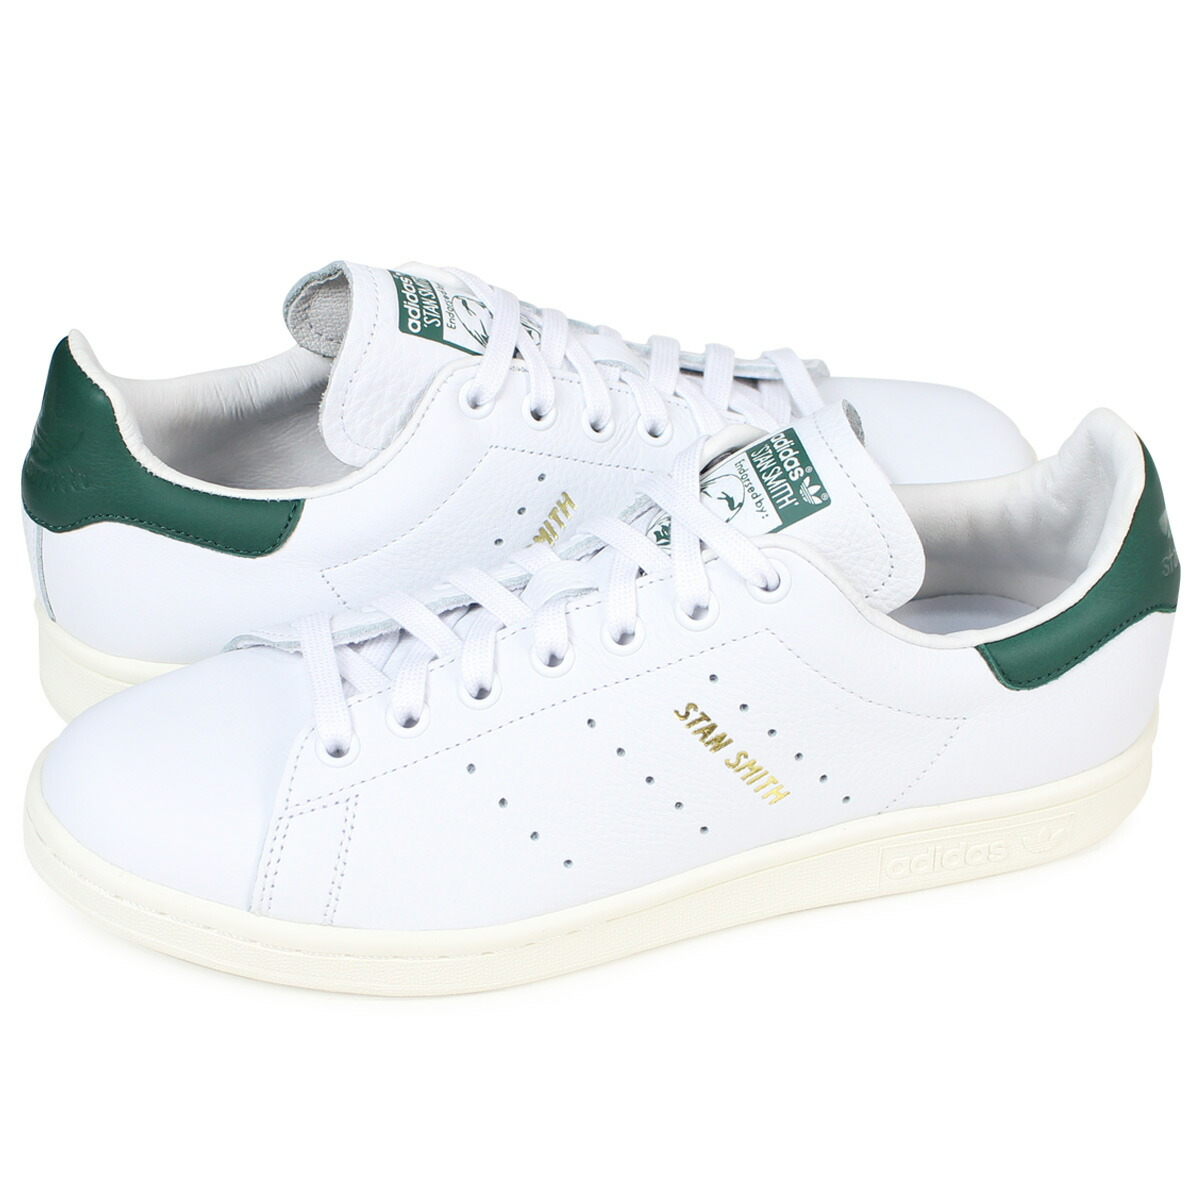 best sneakers 414c6 03ff0 adidas Originals STAN SMITH Adidas originals Stan Smith sneakers men gap  Dis CQ2871 white [the 8/9 additional arrival]